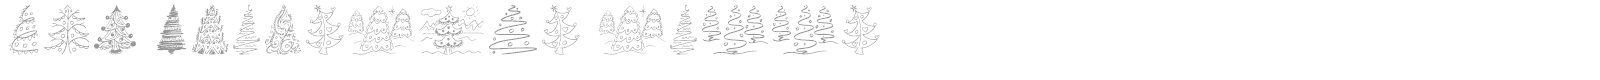 Font Fun Christmas Trees